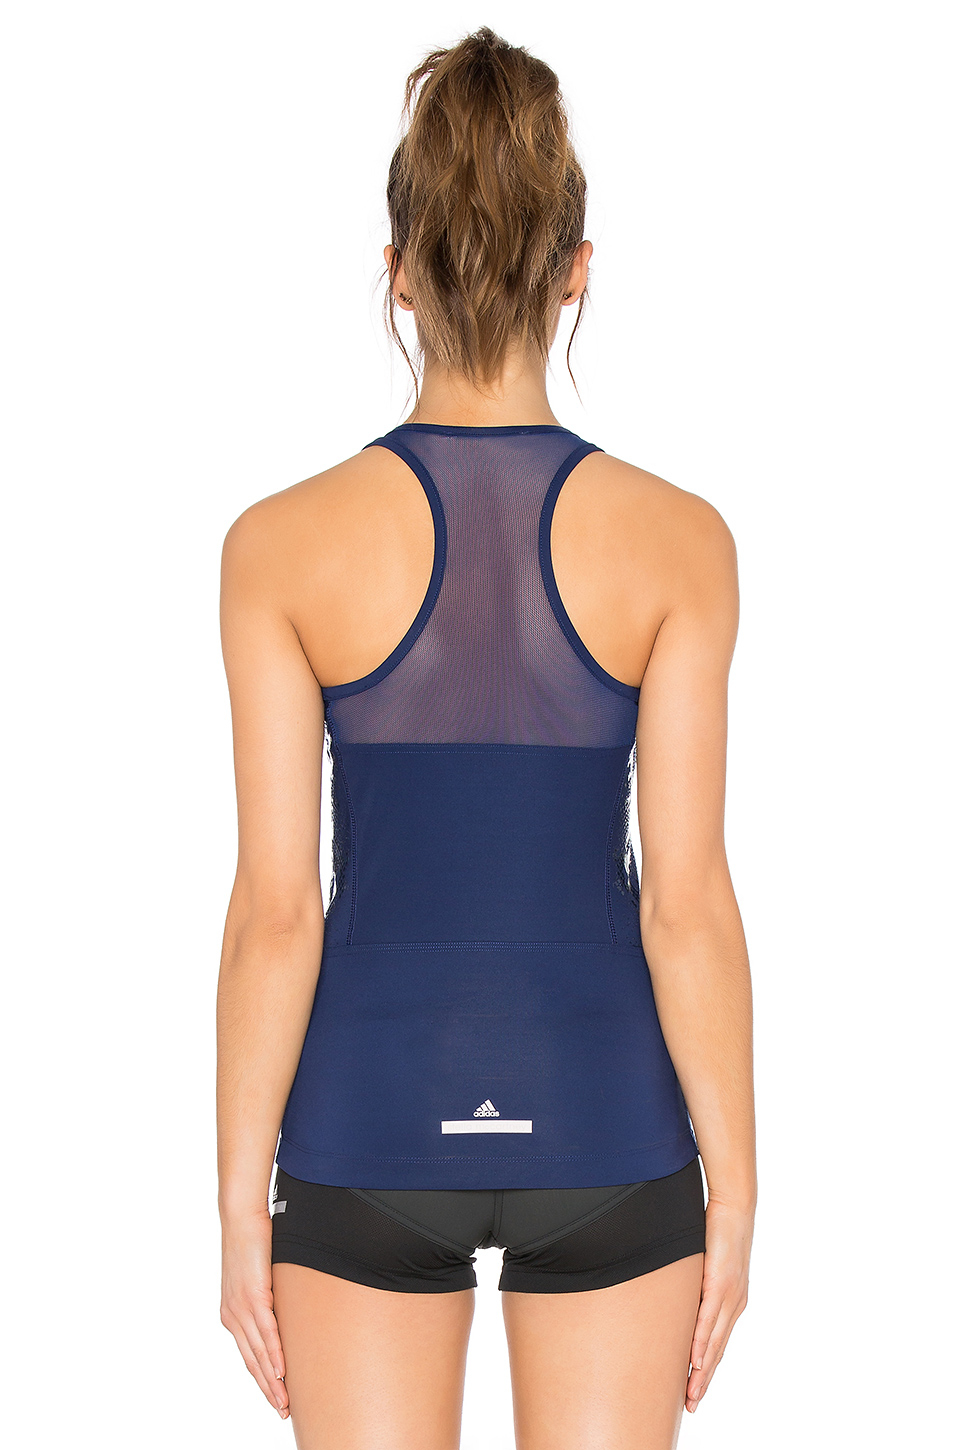 lyst adidas by stella mccartney cycling climacool tank in blue. Black Bedroom Furniture Sets. Home Design Ideas